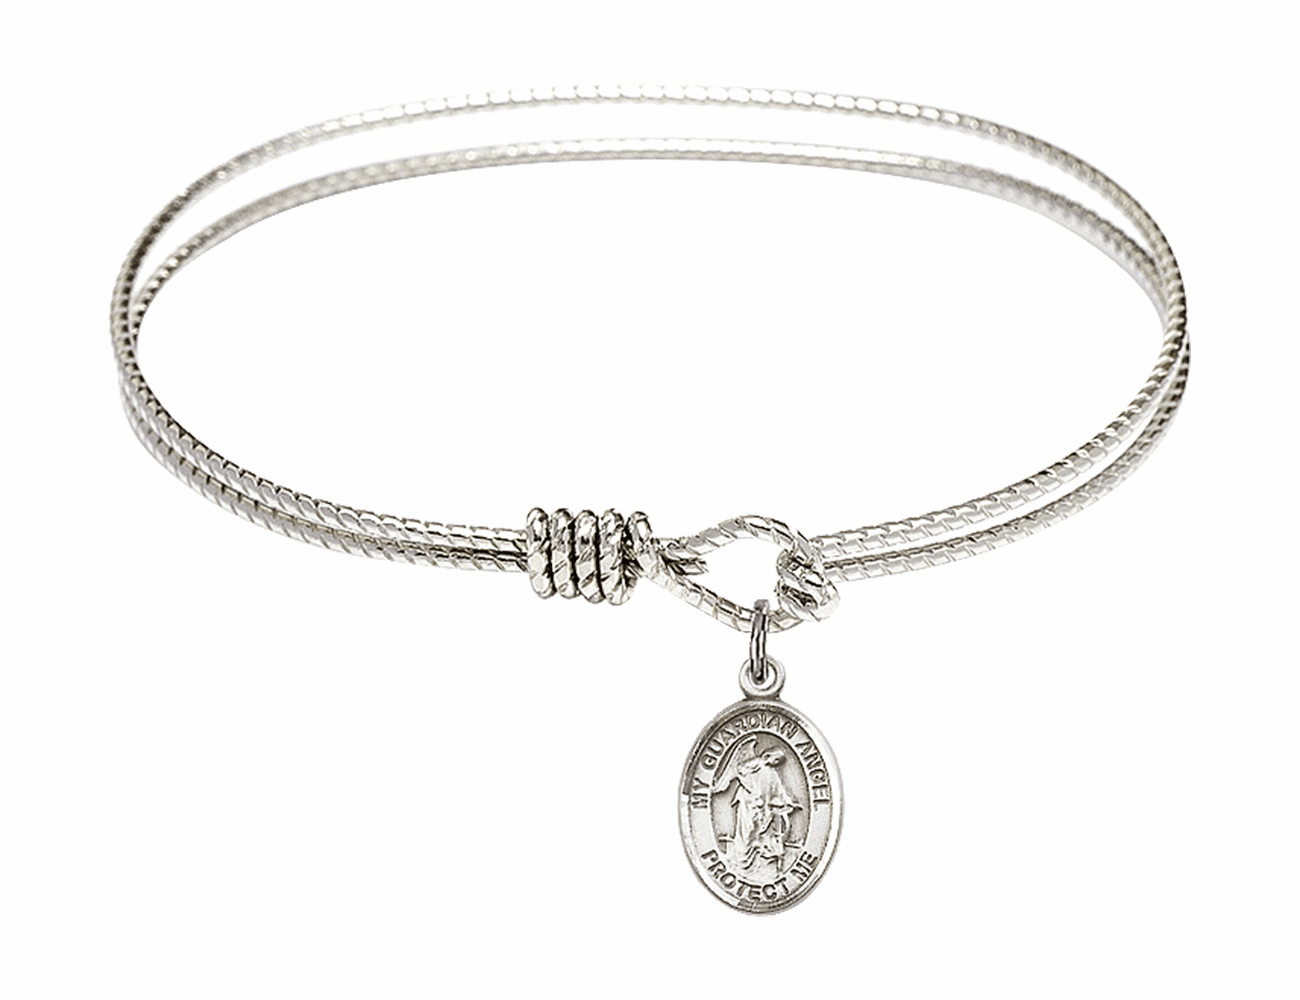 Twisted Guardian Angel Bangle Sterling Silver Charm Bracelet by Bliss